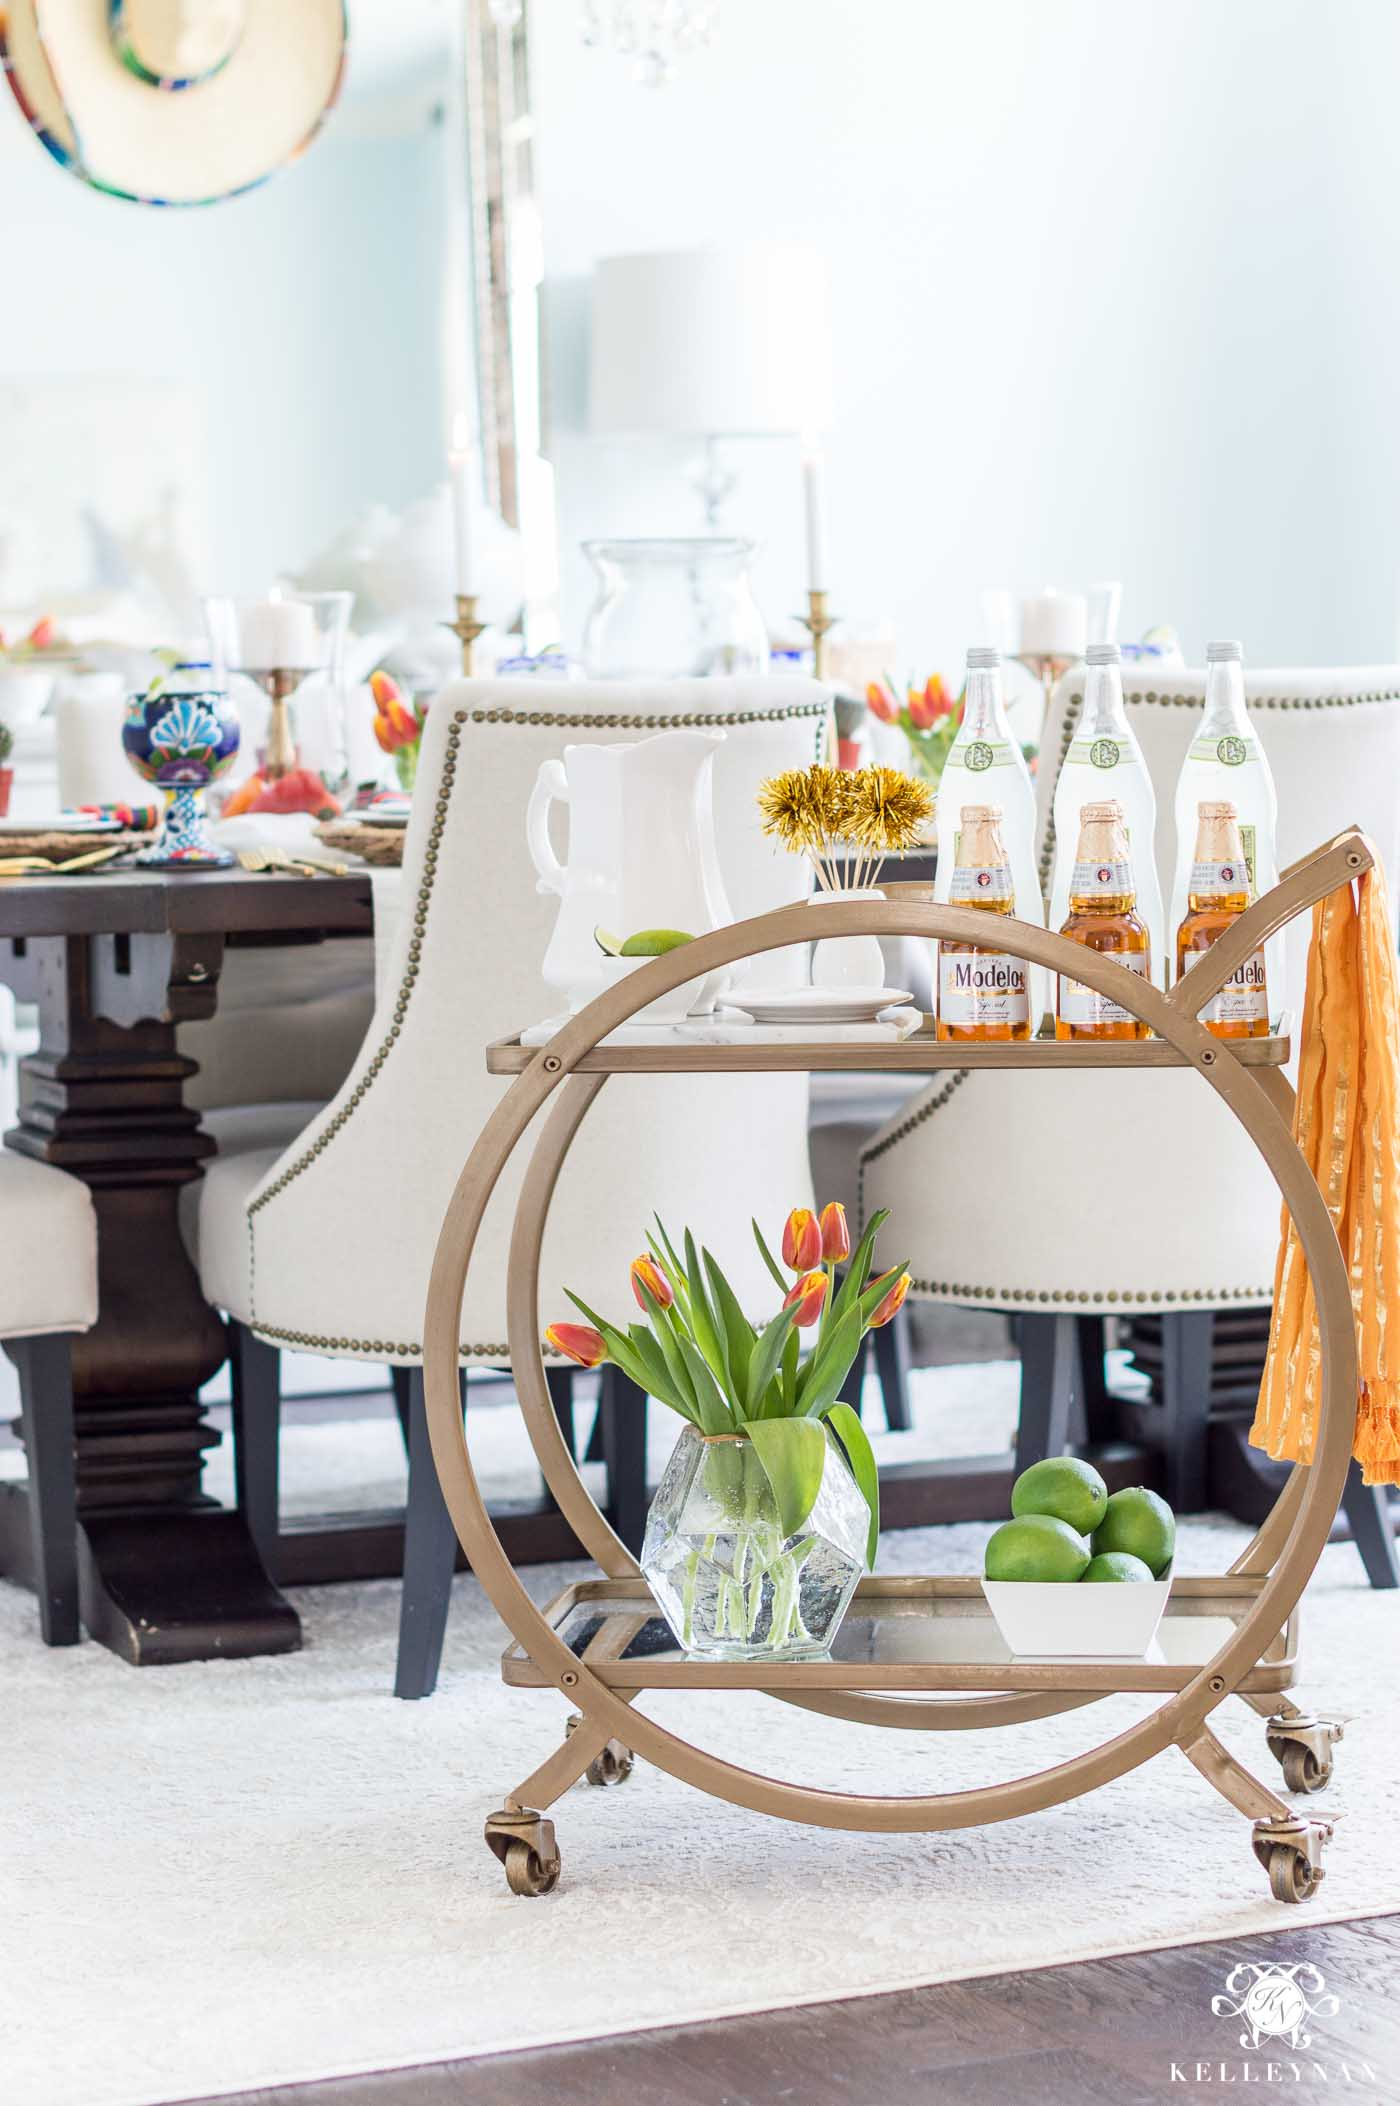 Fantastic Dinner Date At Home Ideas Motif - Home Decorating ...